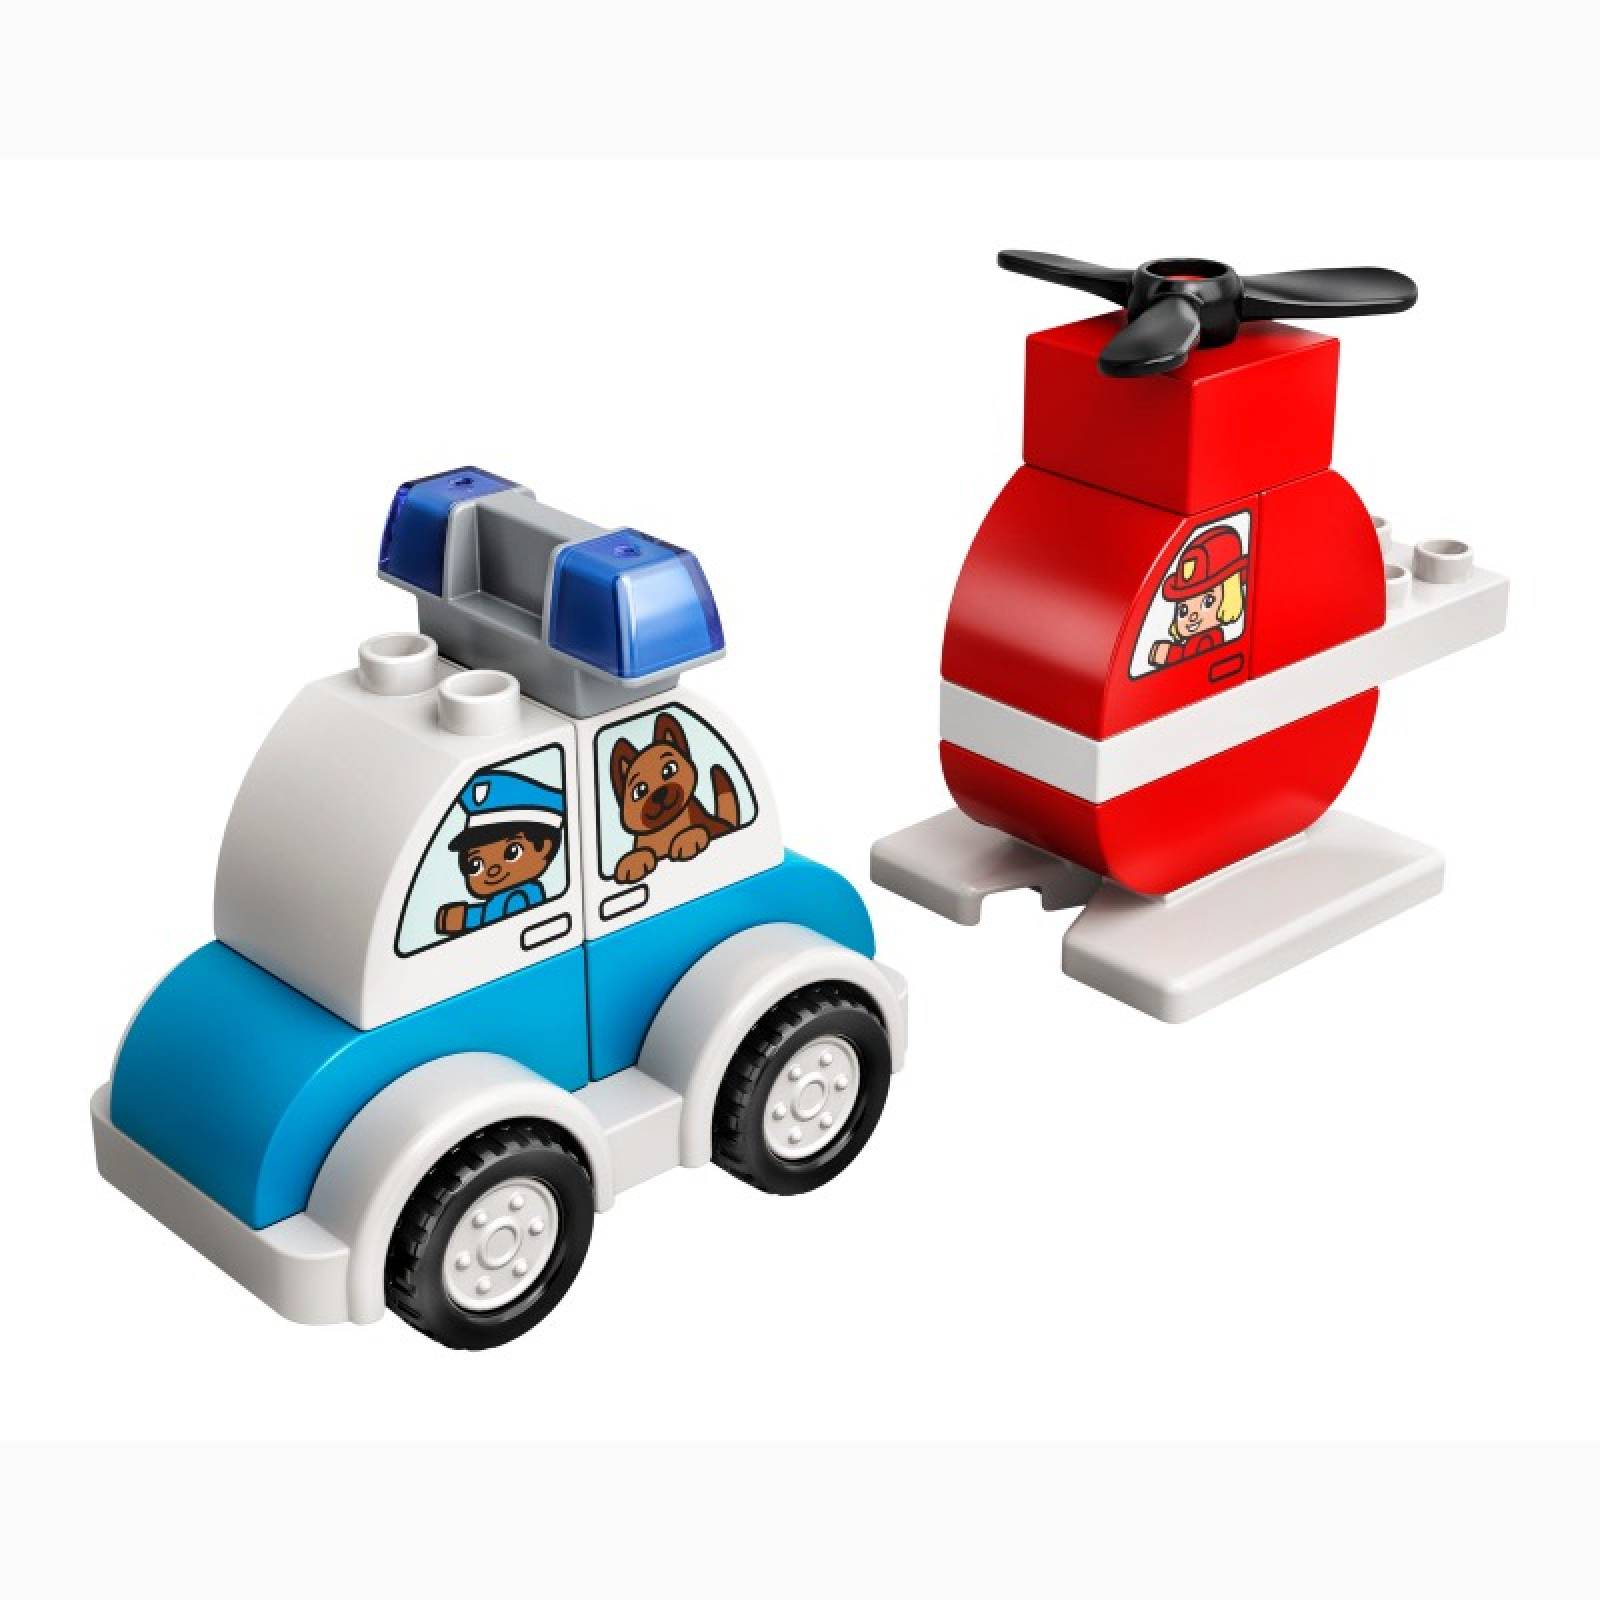 LEGO DUPLO Fire Helicopter & Police Car 10957 1.5+ thumbnails